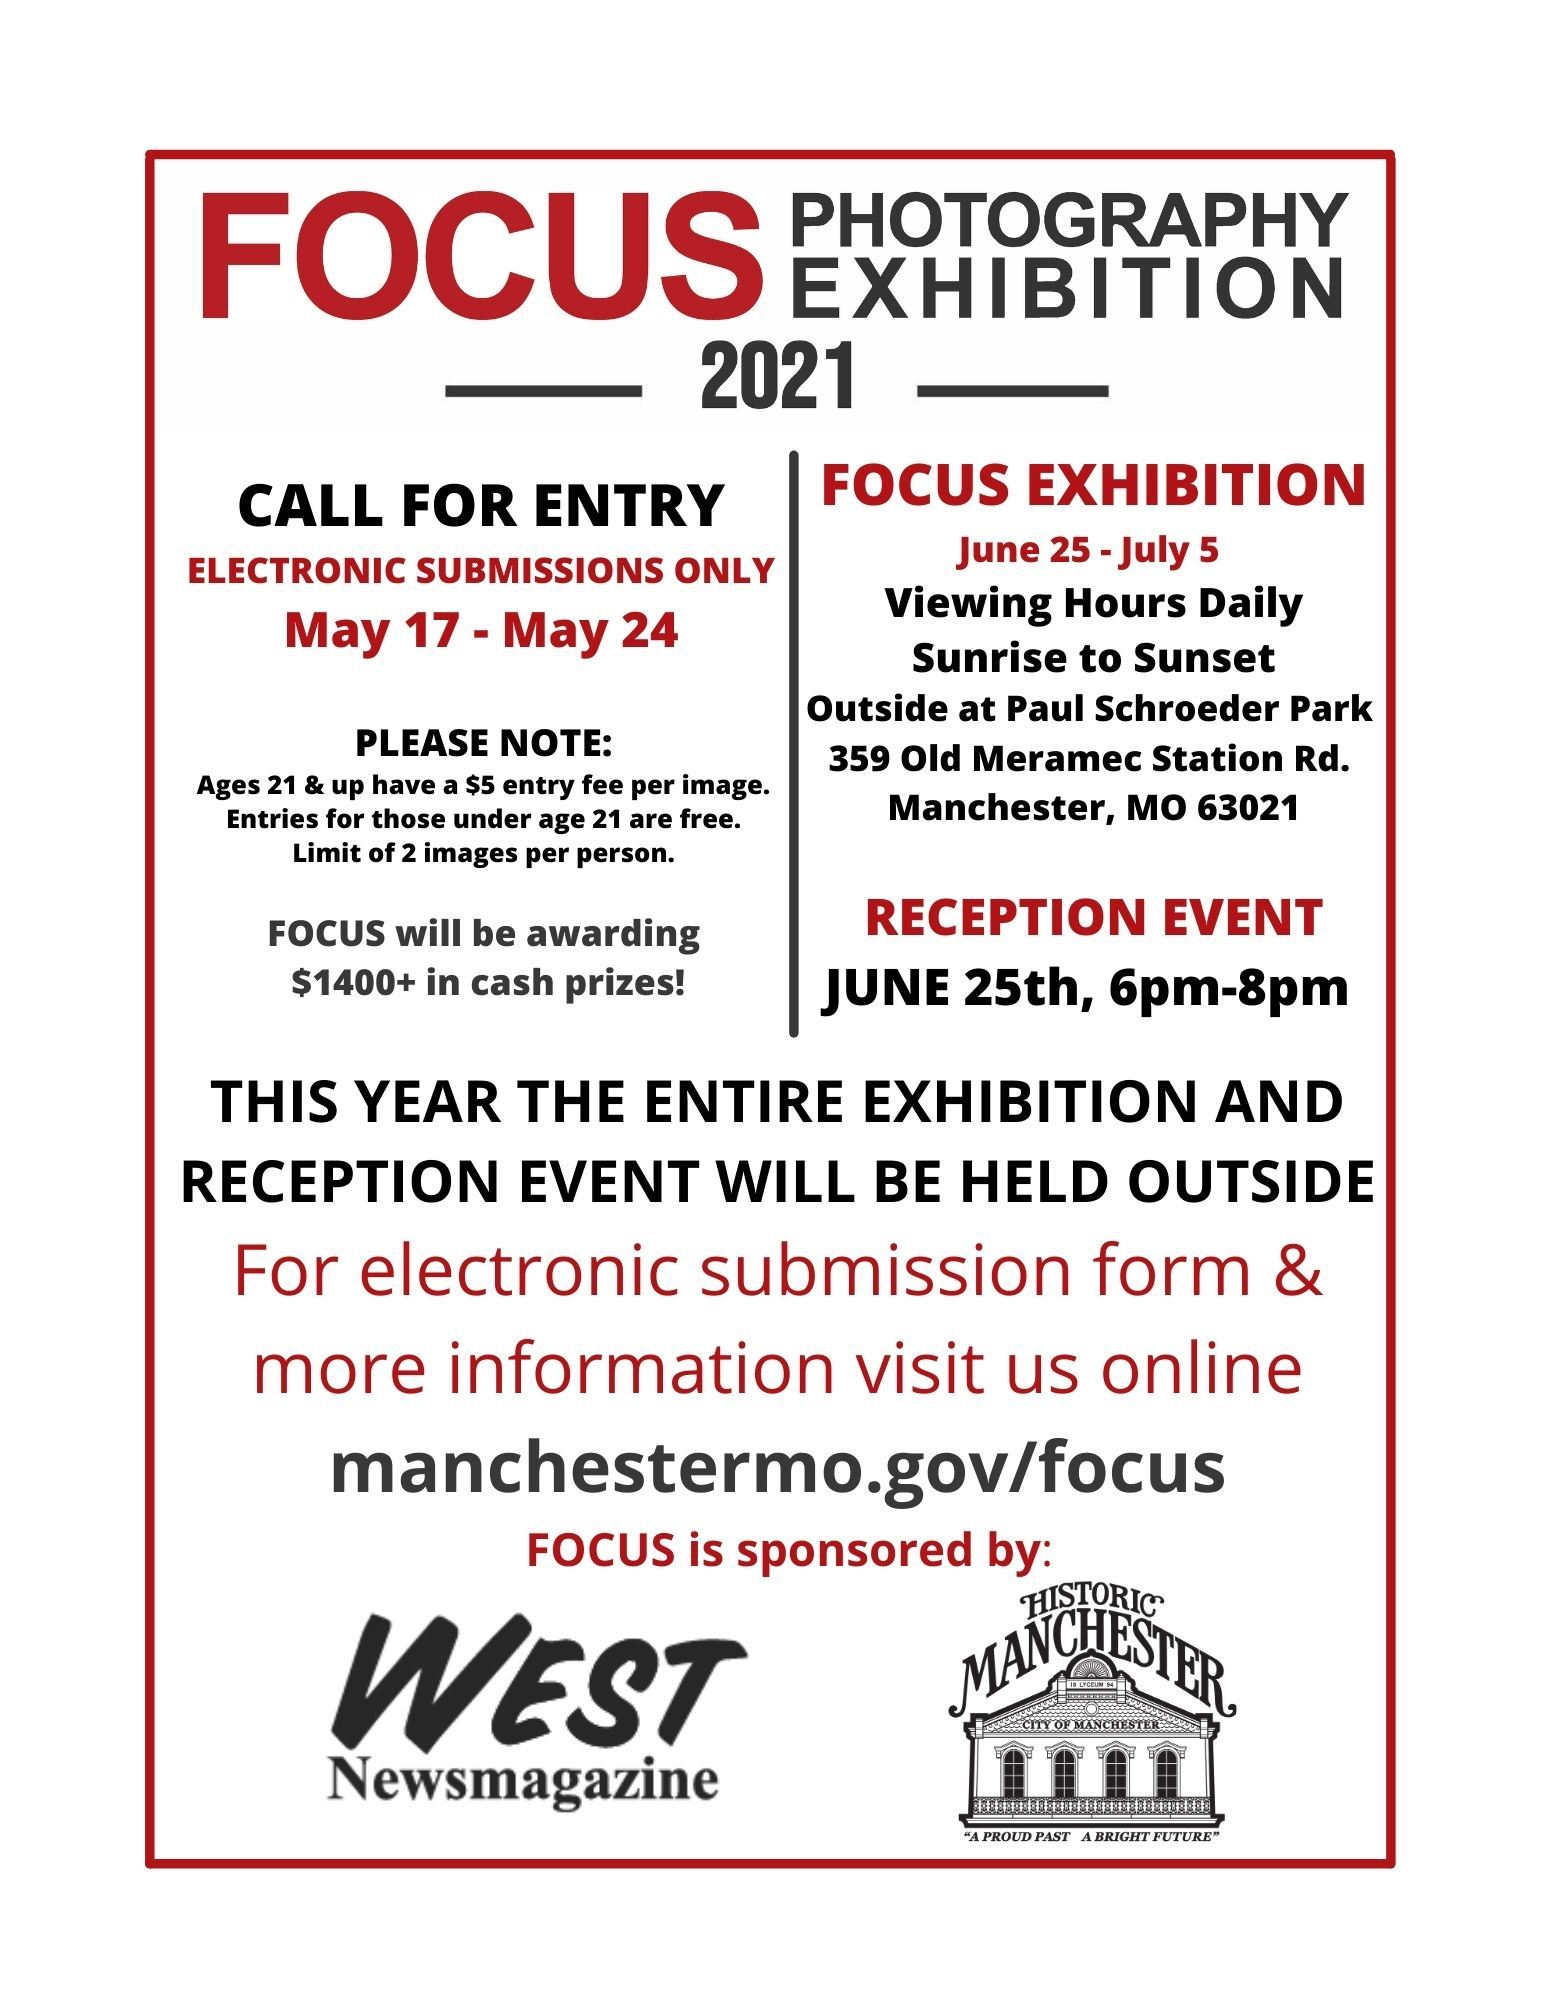 FOCUS West News